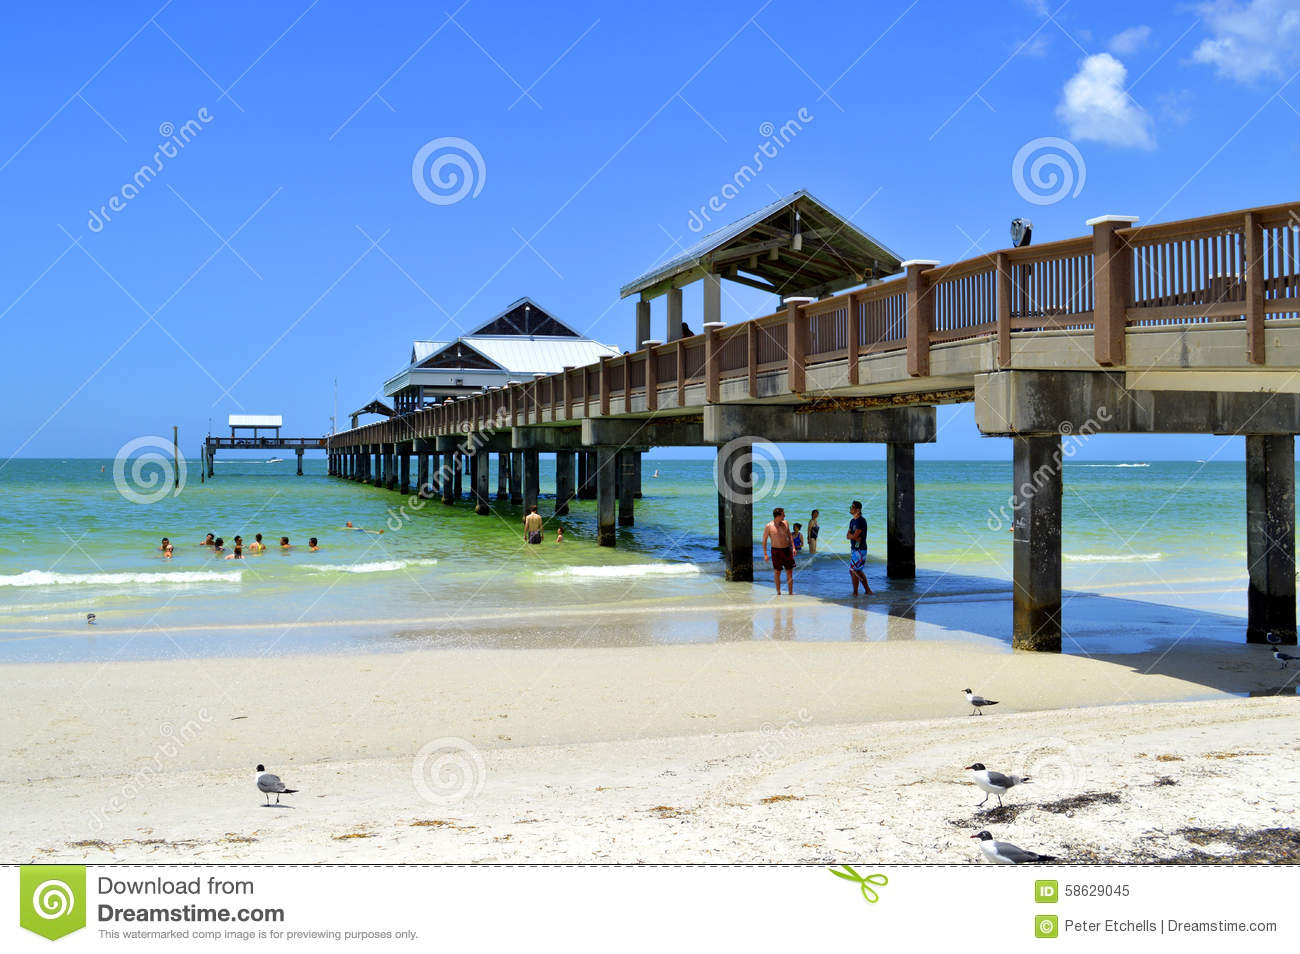 Pier 60 Clearwater Beach Florida Usa May 12 2015 Tourists On The Beach Bar Enjoying The Sun